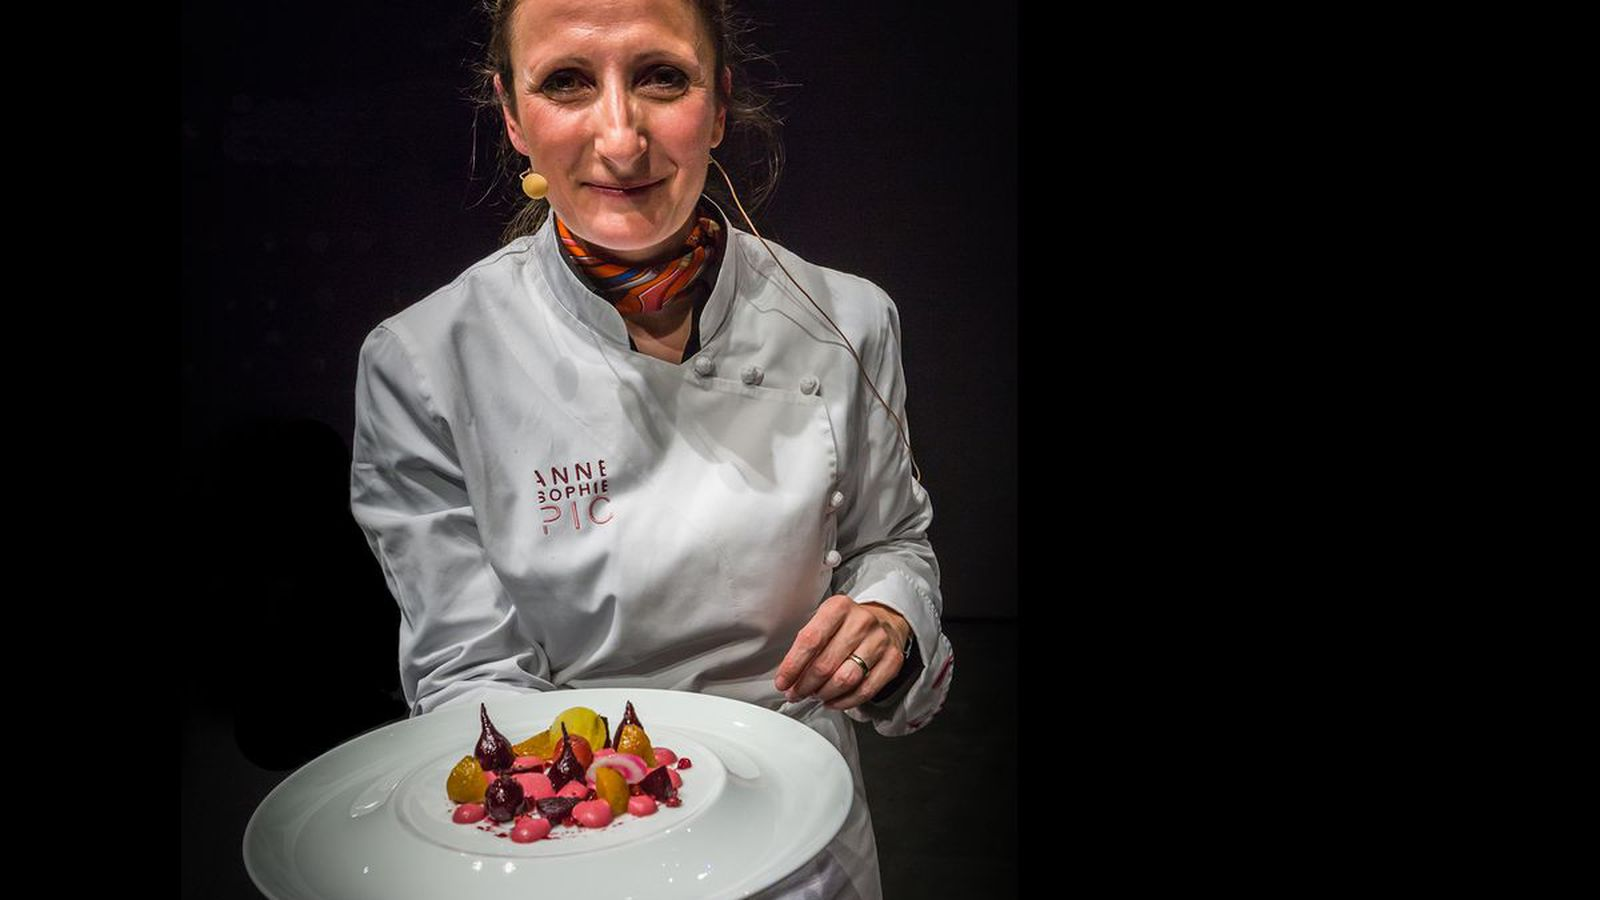 acclaimed french chef anne sophie pic scraps plans to open. Black Bedroom Furniture Sets. Home Design Ideas